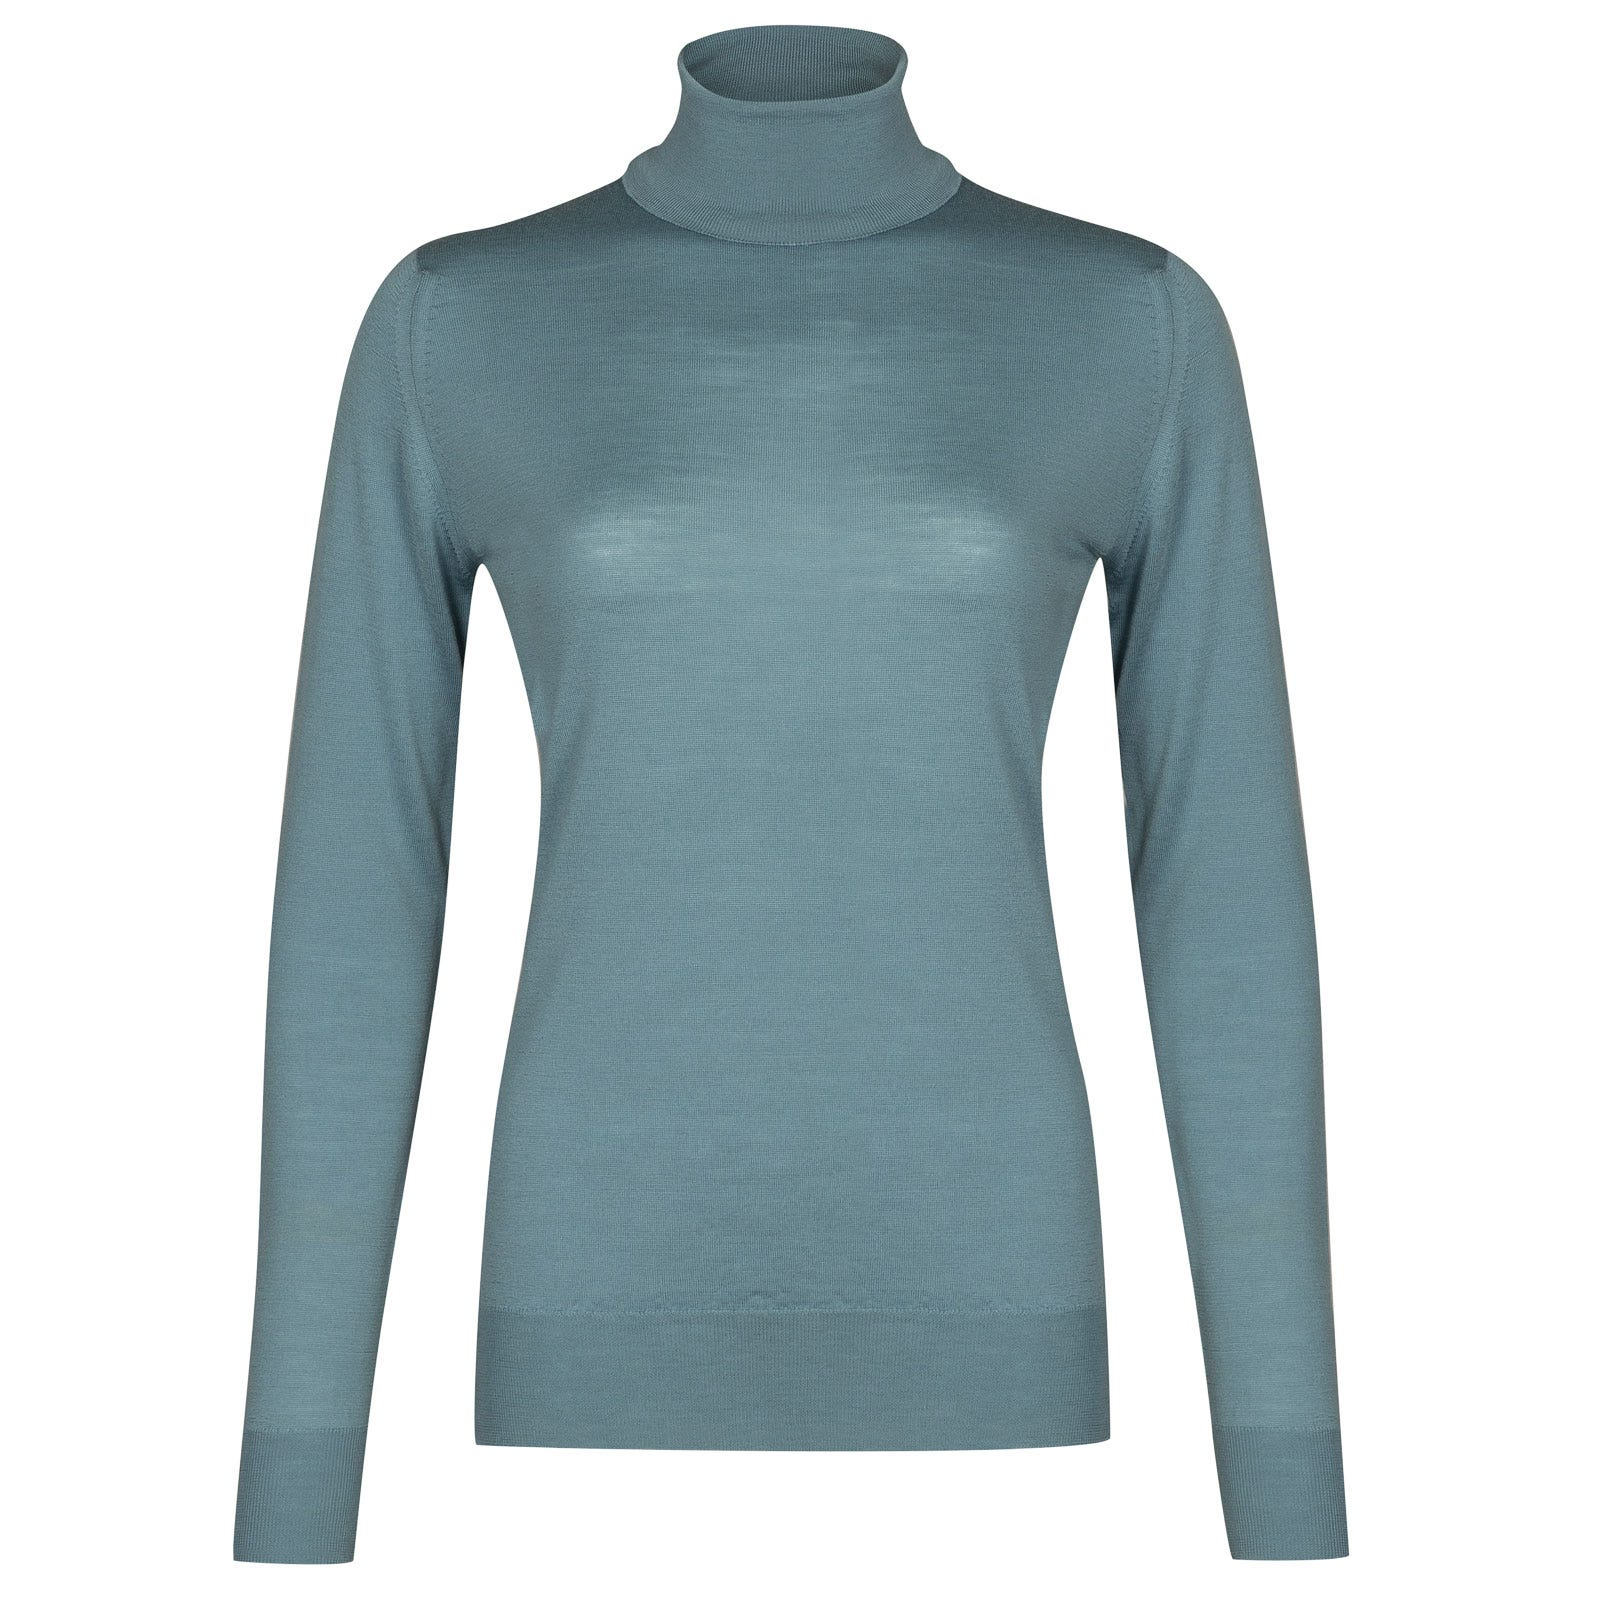 John Smedley Catkin Merino Wool Sweater in Summit Blue-M